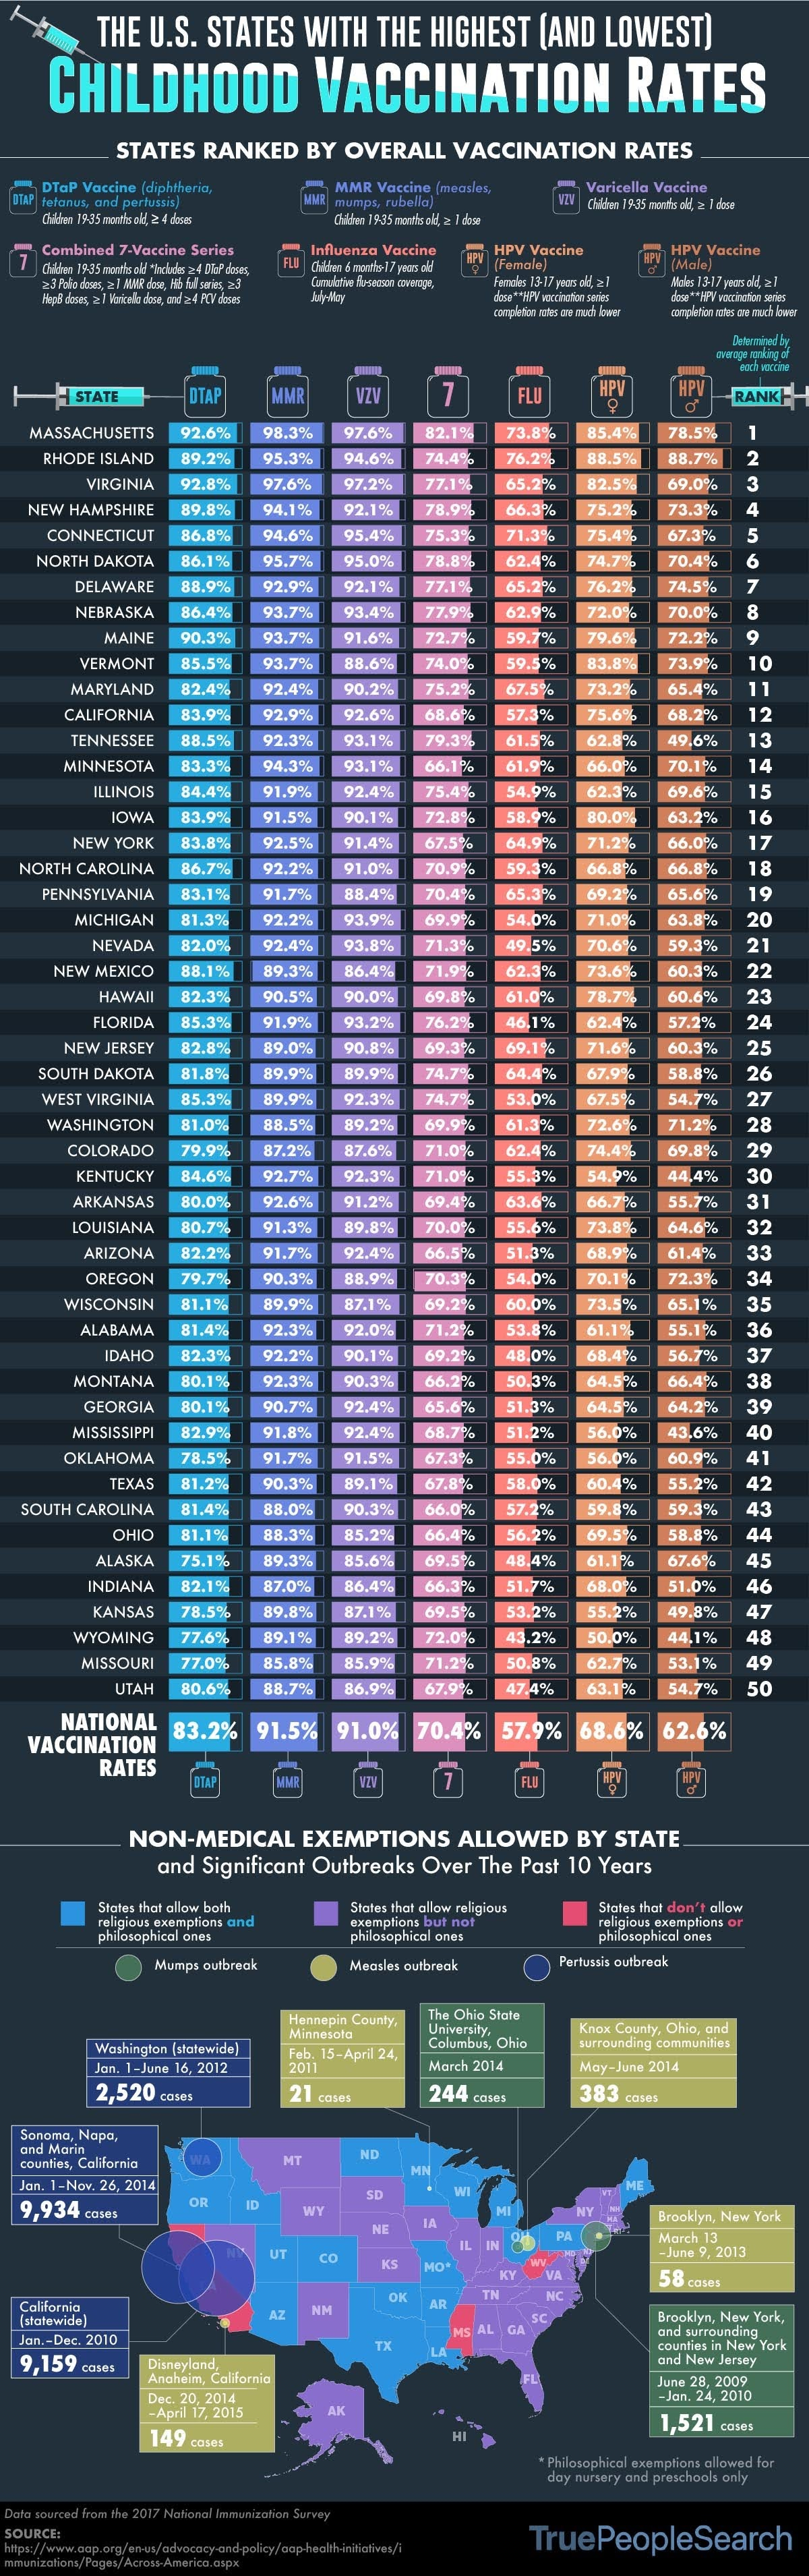 the-us-states-with-the-highest-and-lowest-vaccination-rates-infographic